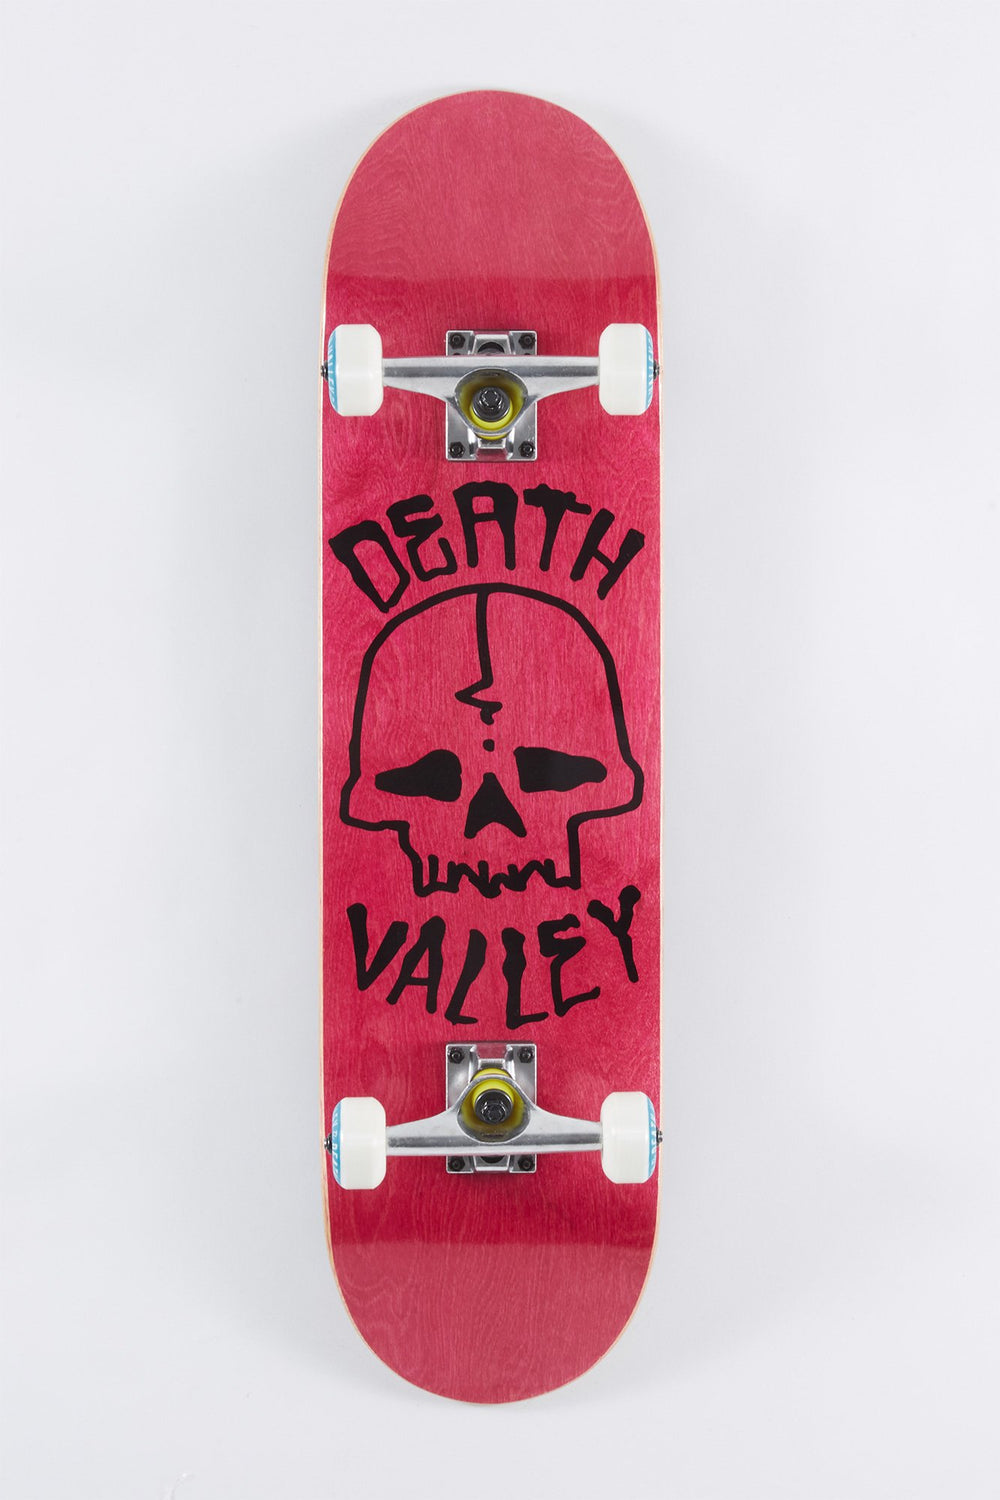 Skateboard Death Valley Crane 8.25